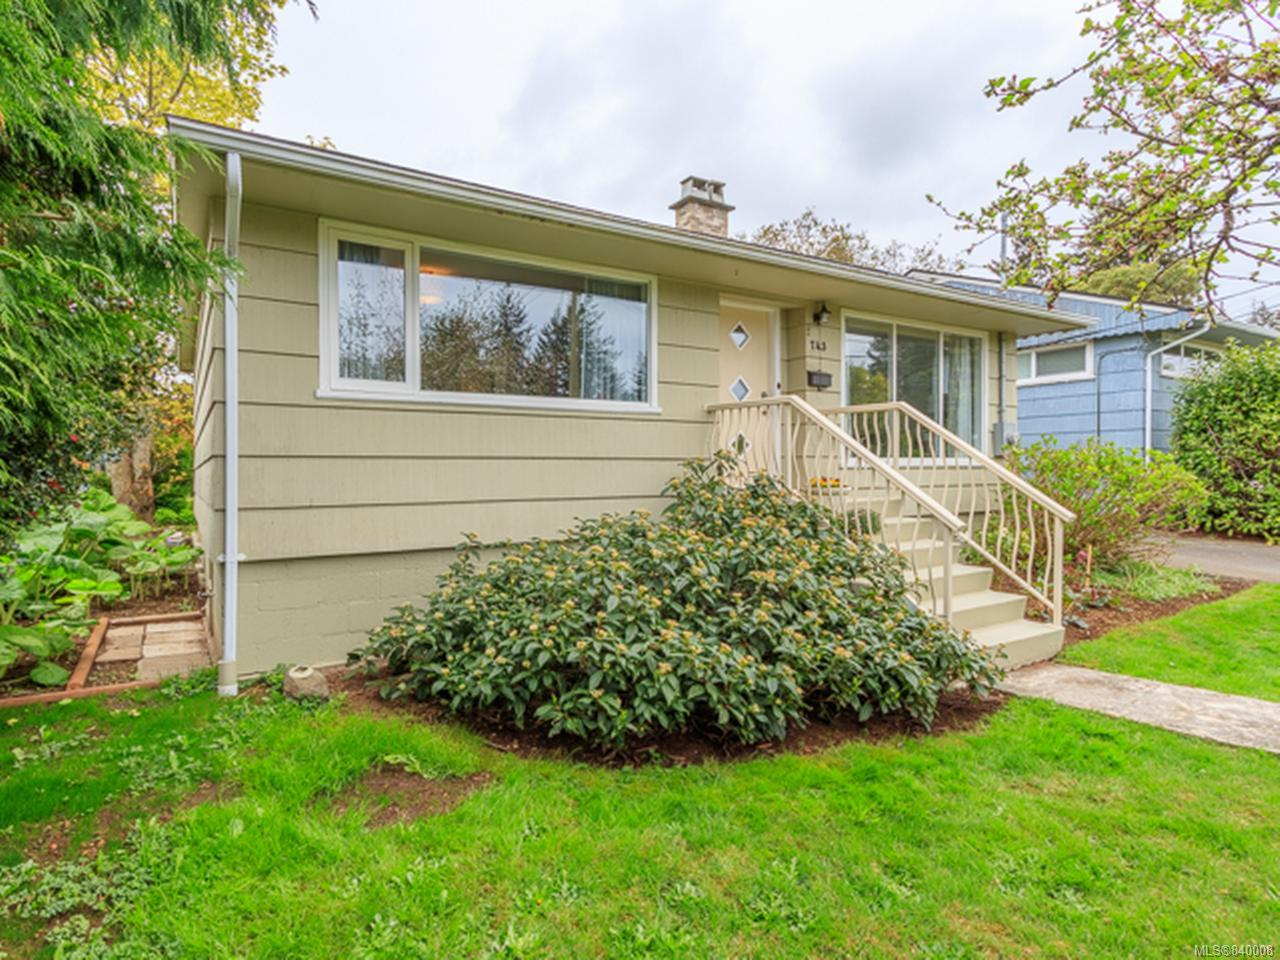 FEATURED LISTING: 743 Cadogan St NANAIMO